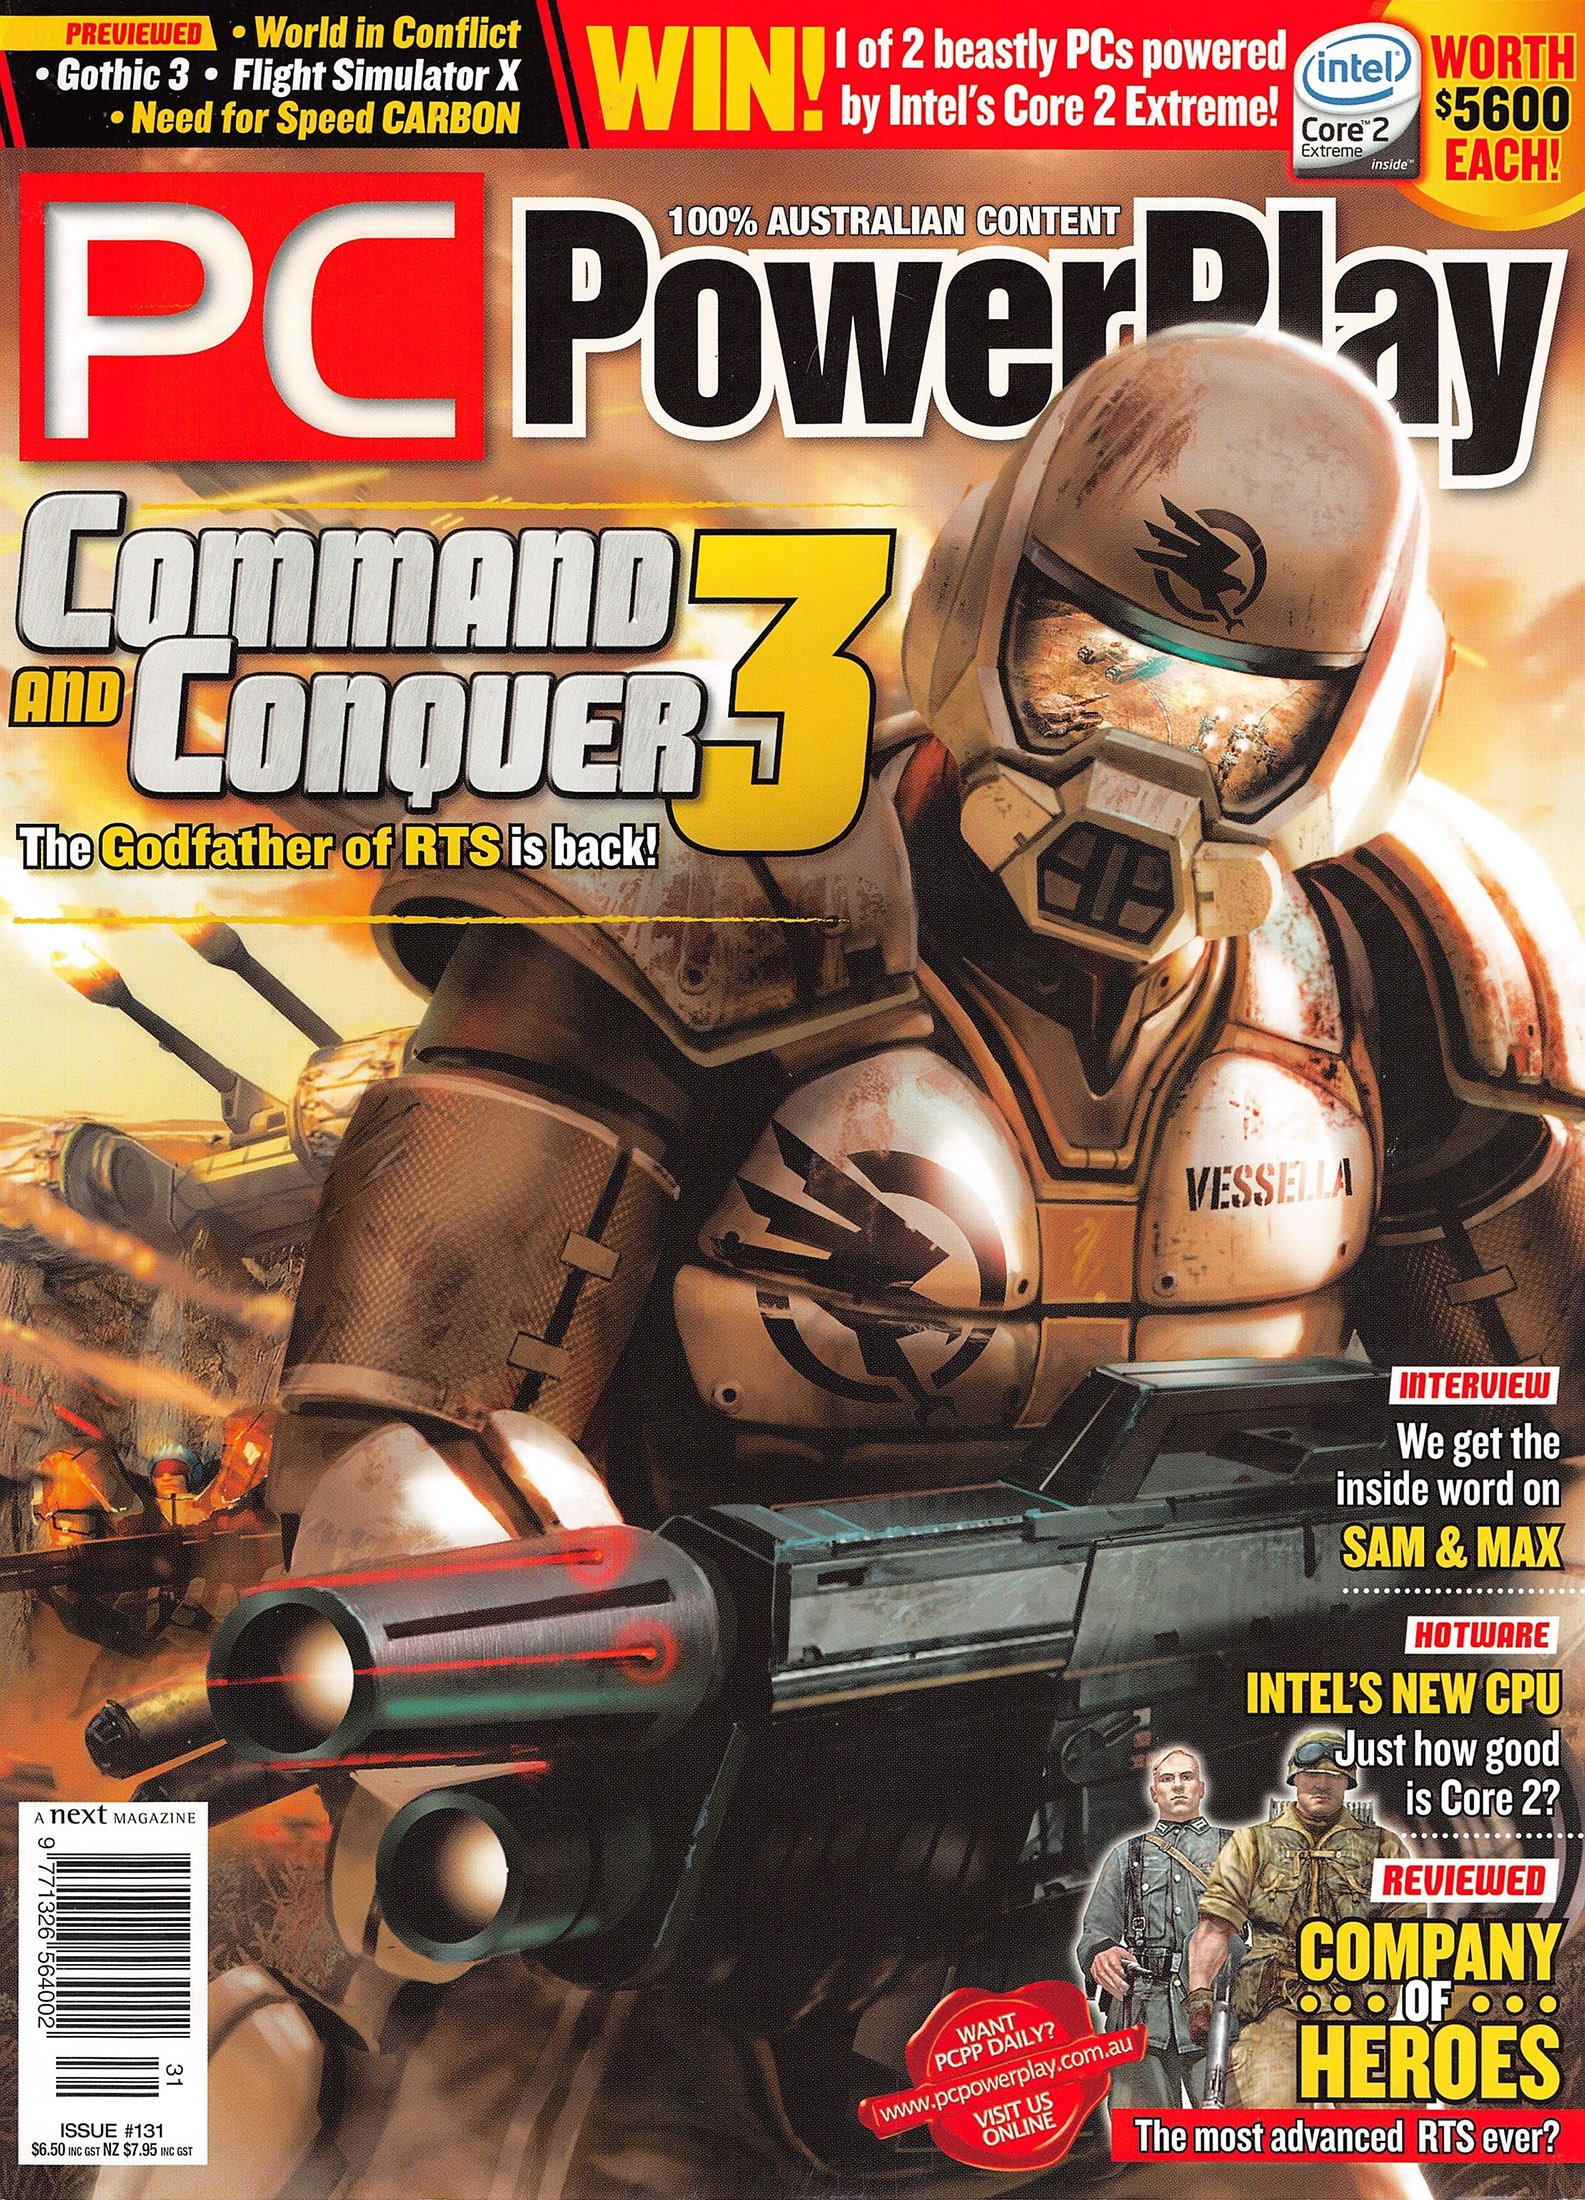 PC PowerPlay 131 (November 2006)